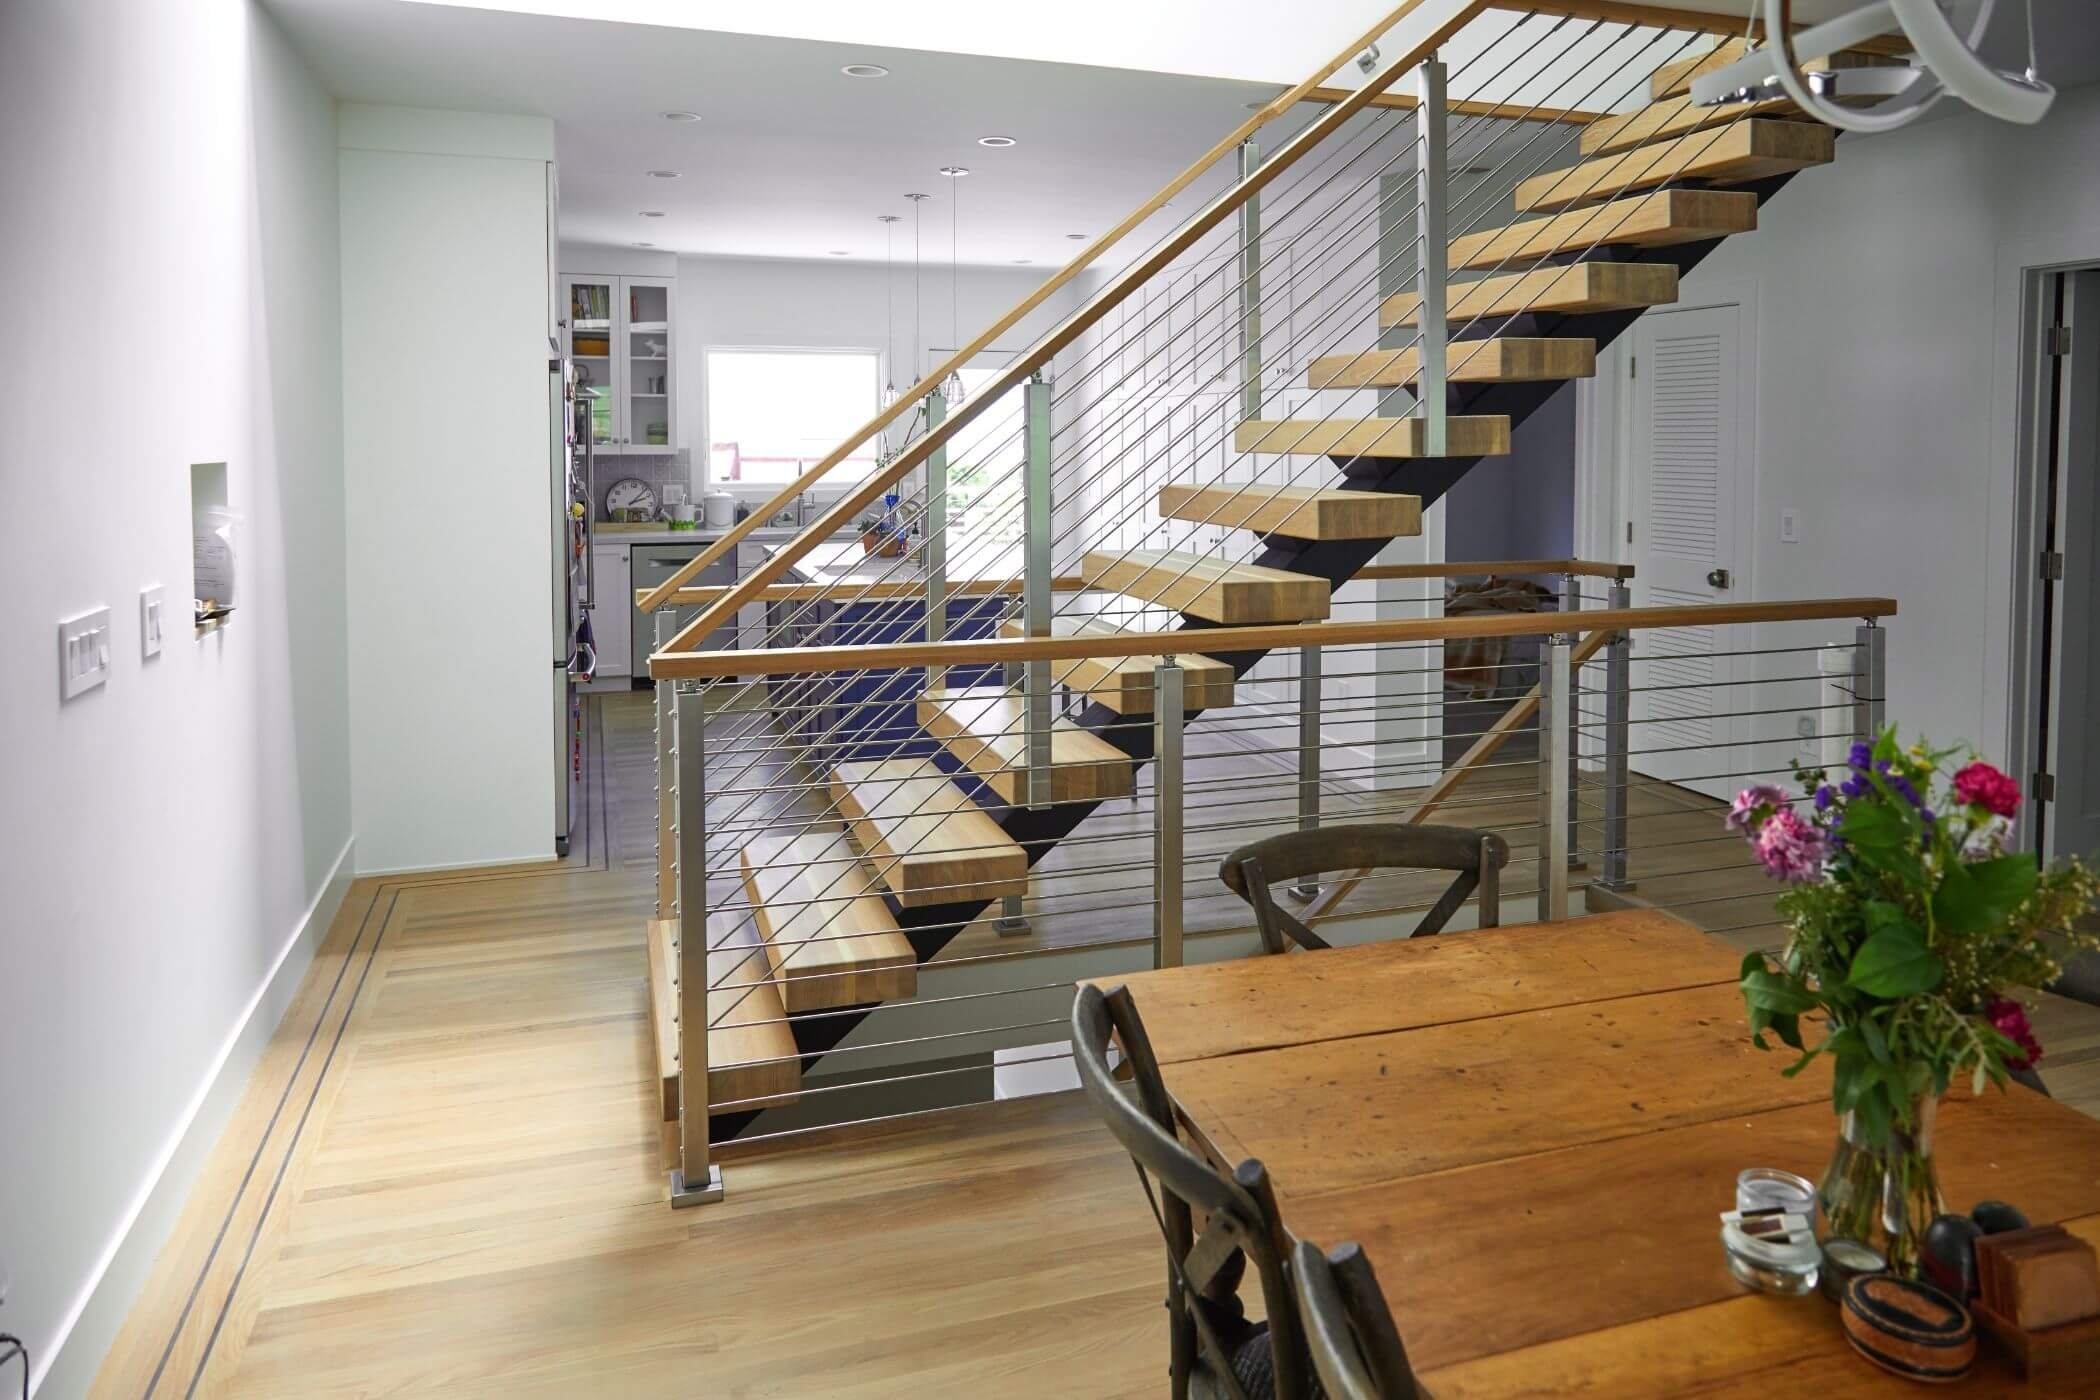 Types Of Stairs Modern Straight L Shaped U Shaped More   Modern U Shaped Staircase   Design   Floating   Interior   Amazing Modern   Oval Shaped